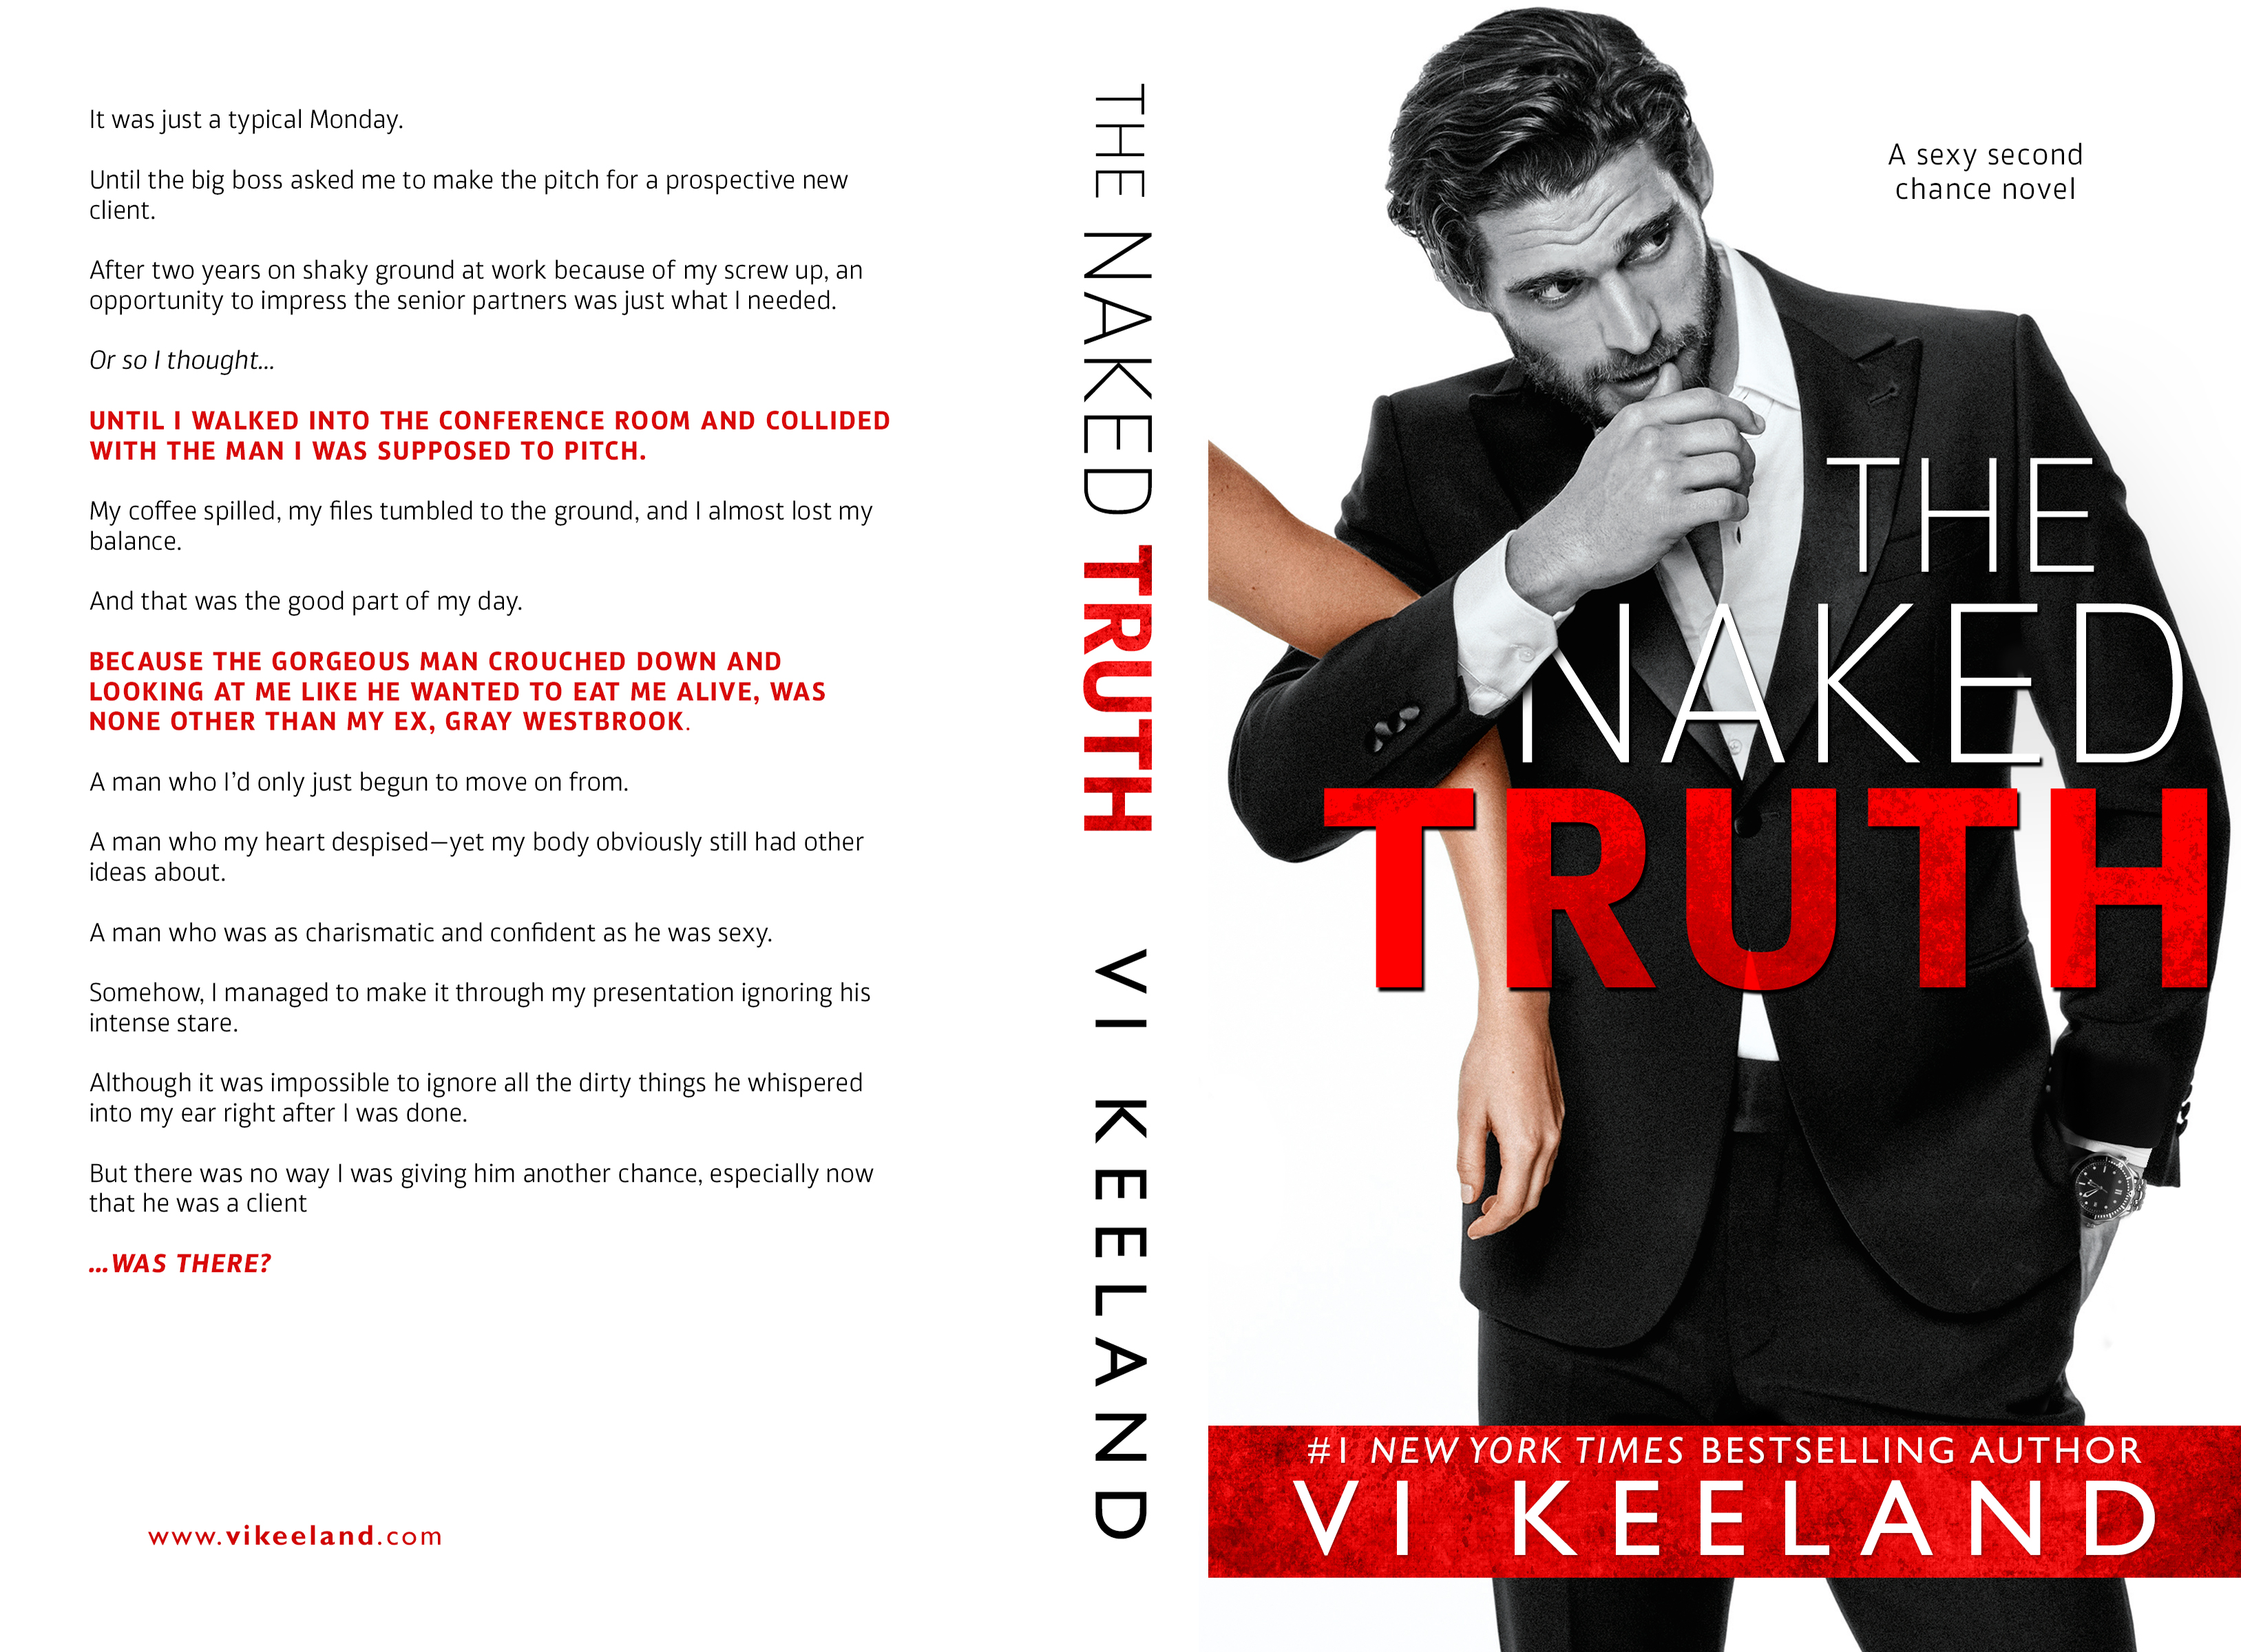 Vi Keeland Libros Cover Reveal Vi Keeland The Naked Truth